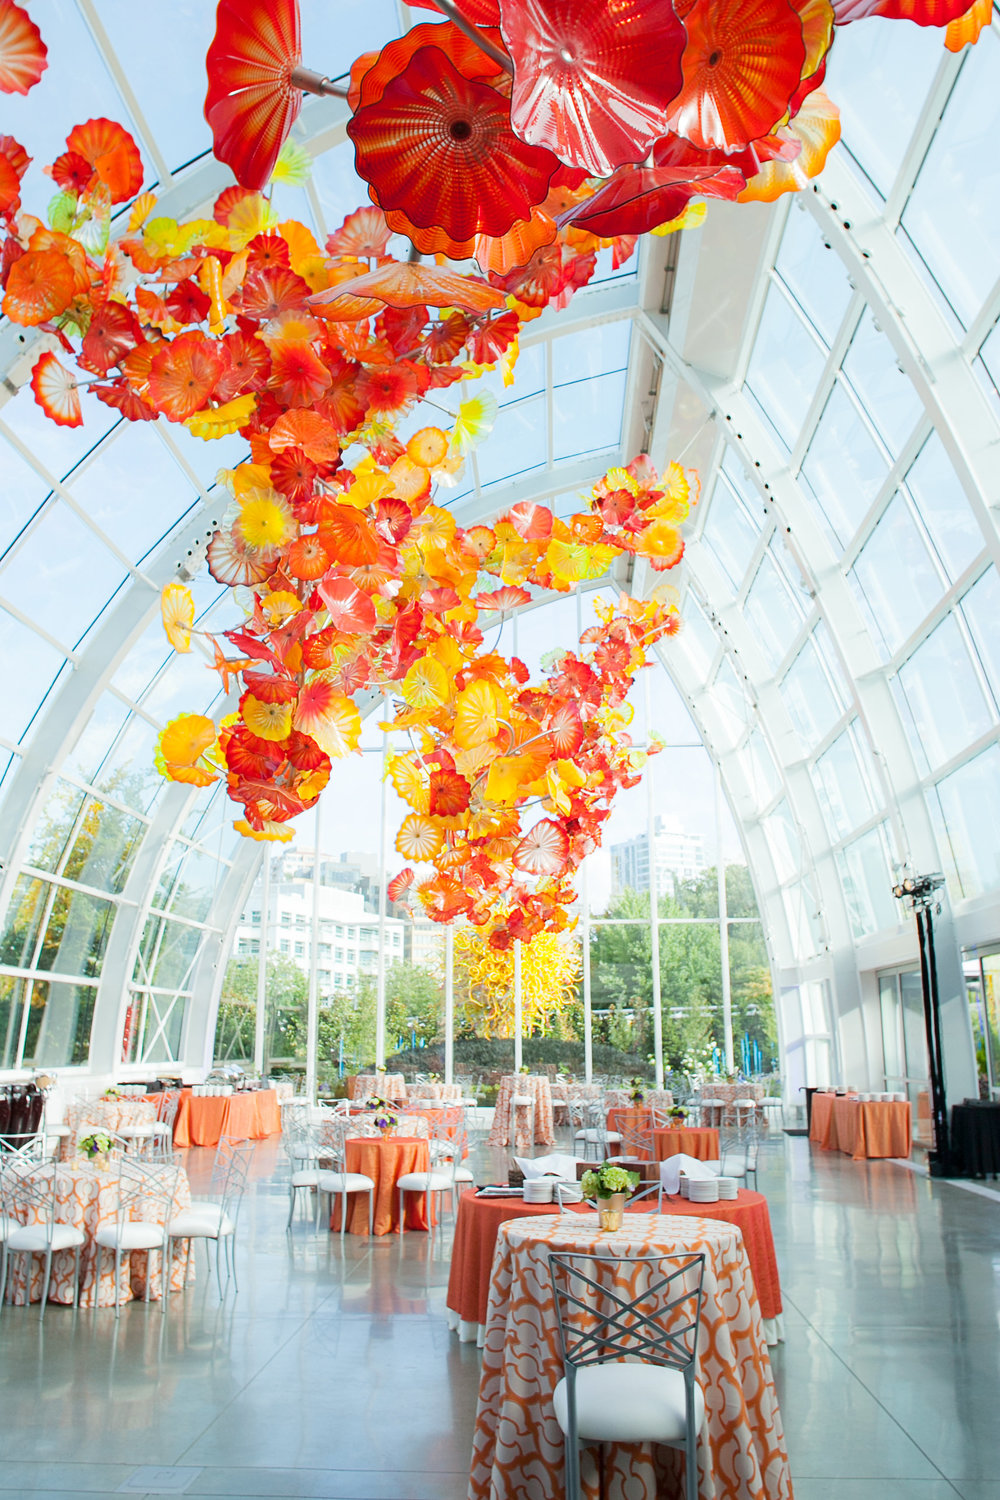 chihuly_garden_and_glass_great_photo.jpg